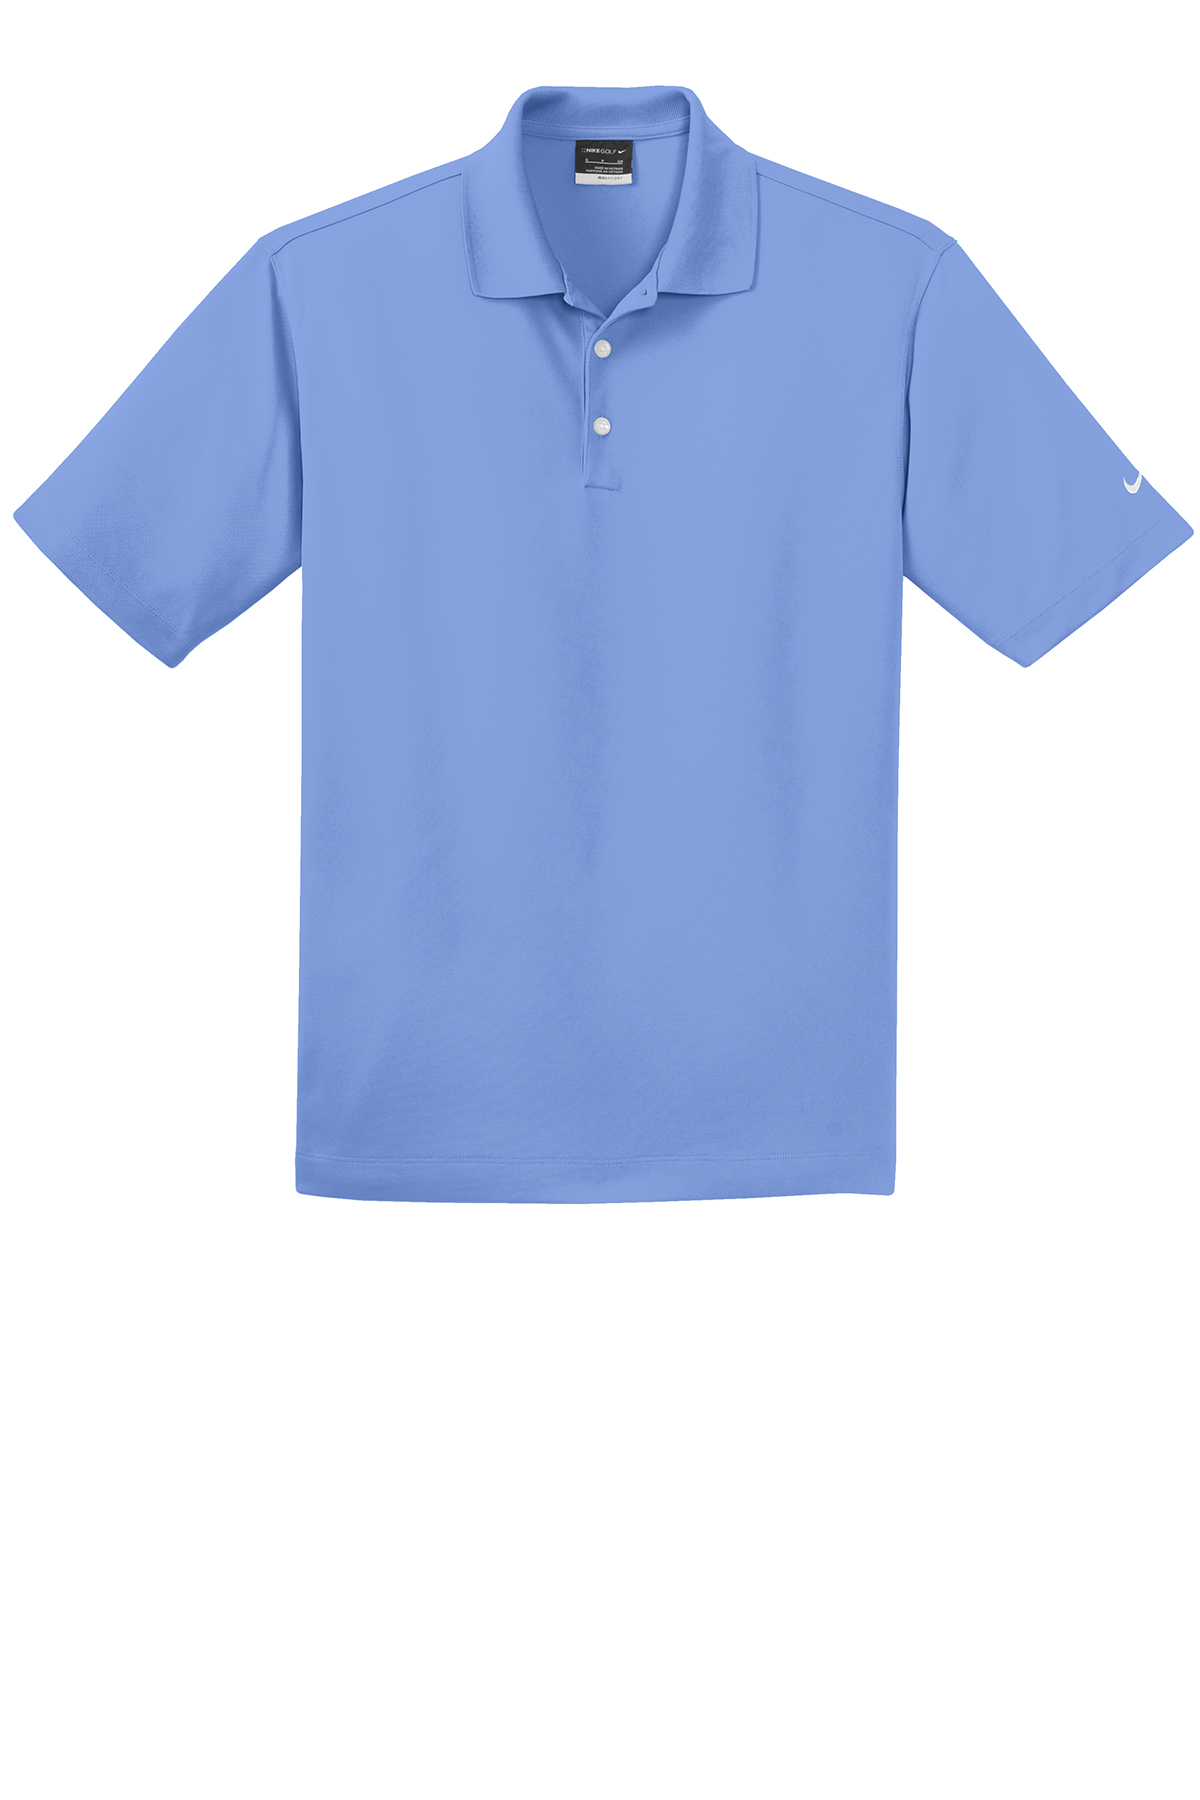 Nike Dri Fit Micro Pique Polo Performance Polos Knits